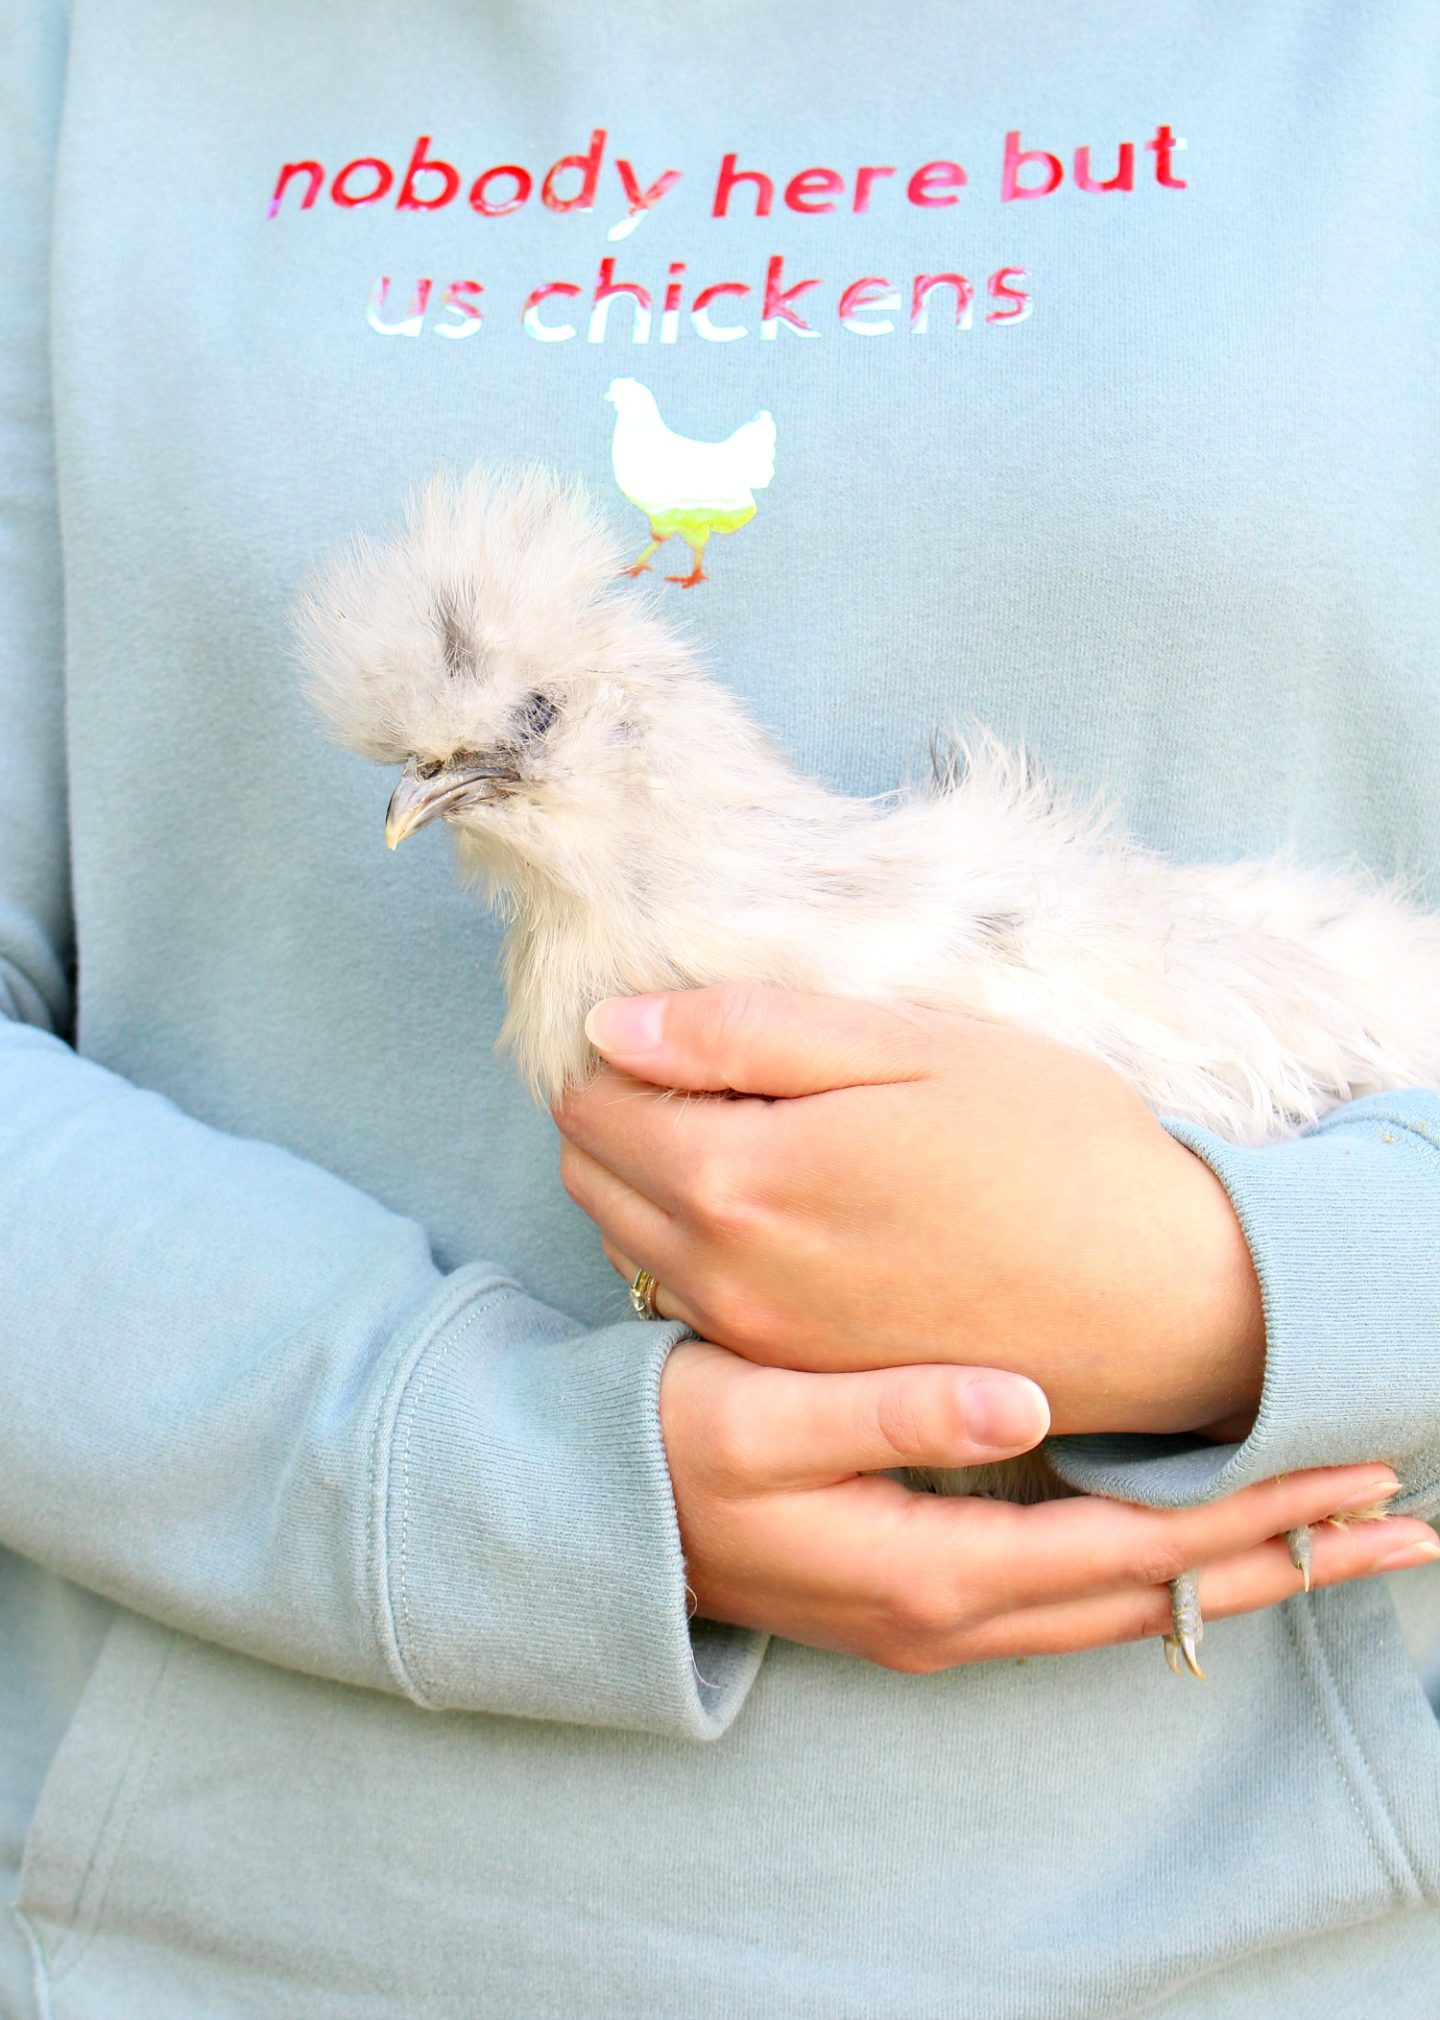 Crazy Chicken Lady DIY Gift Idea